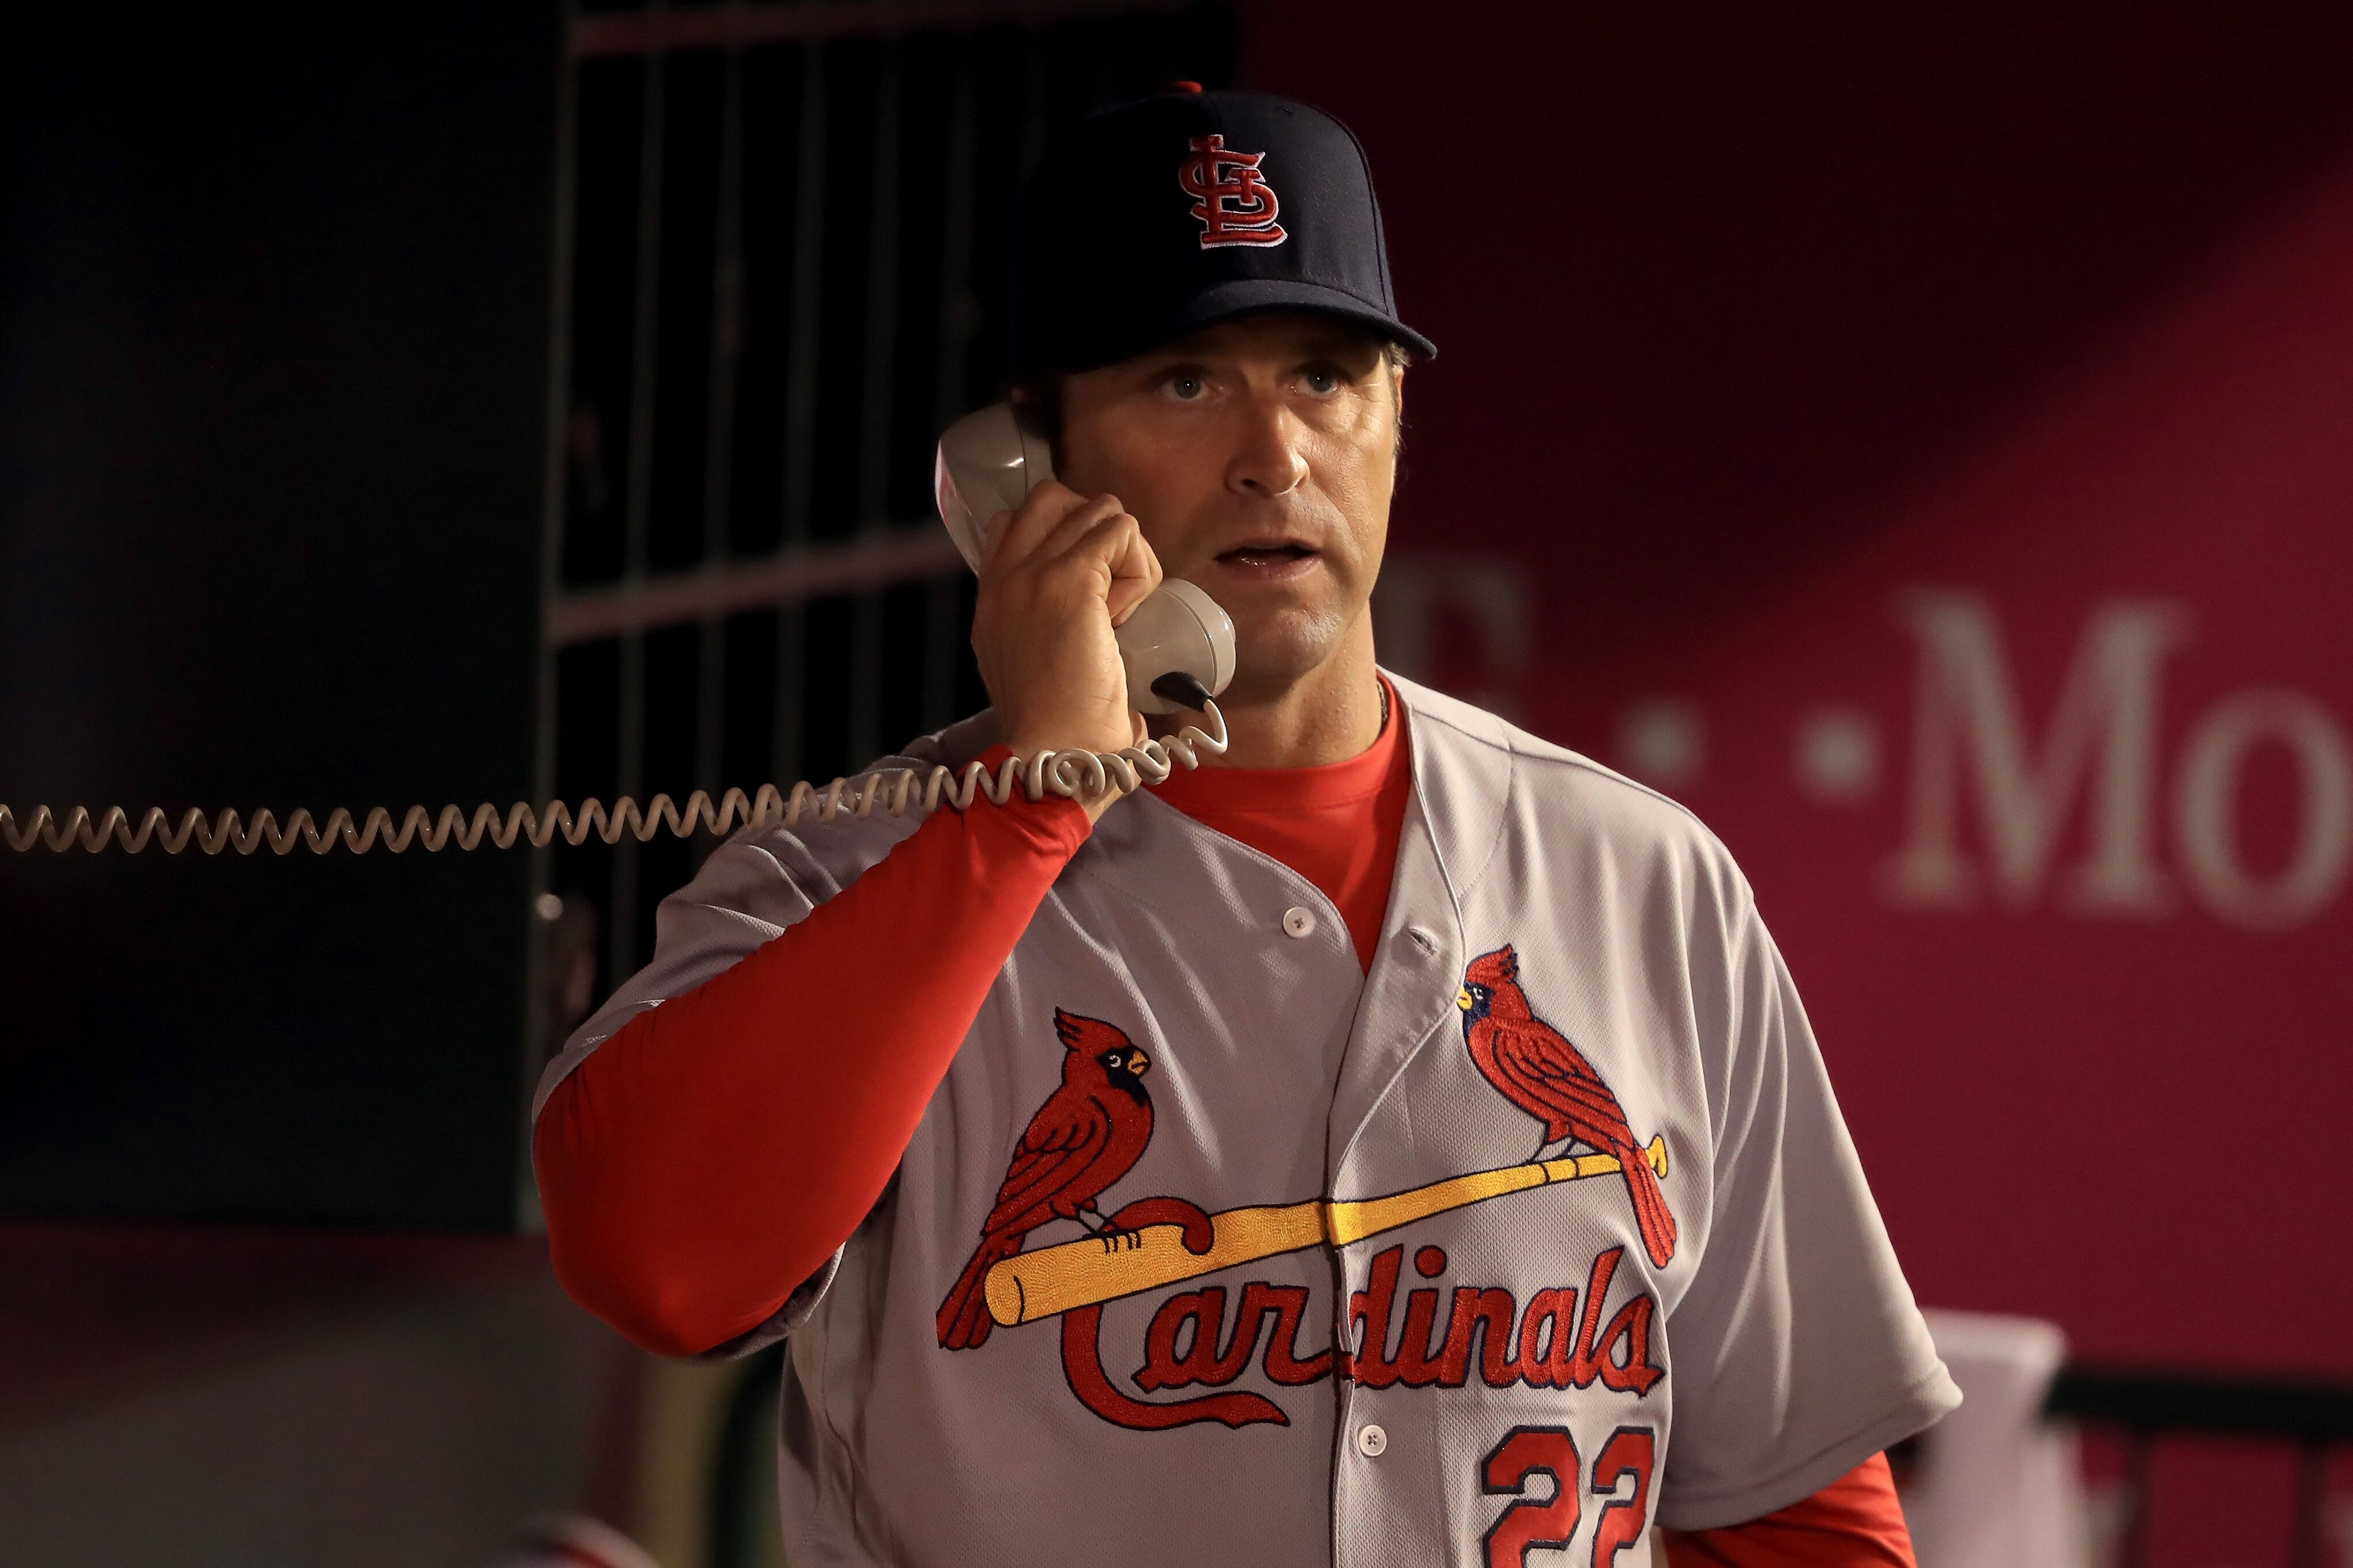 St. Louis Cardinals: Mike Matheny with a chef knife and eerie music